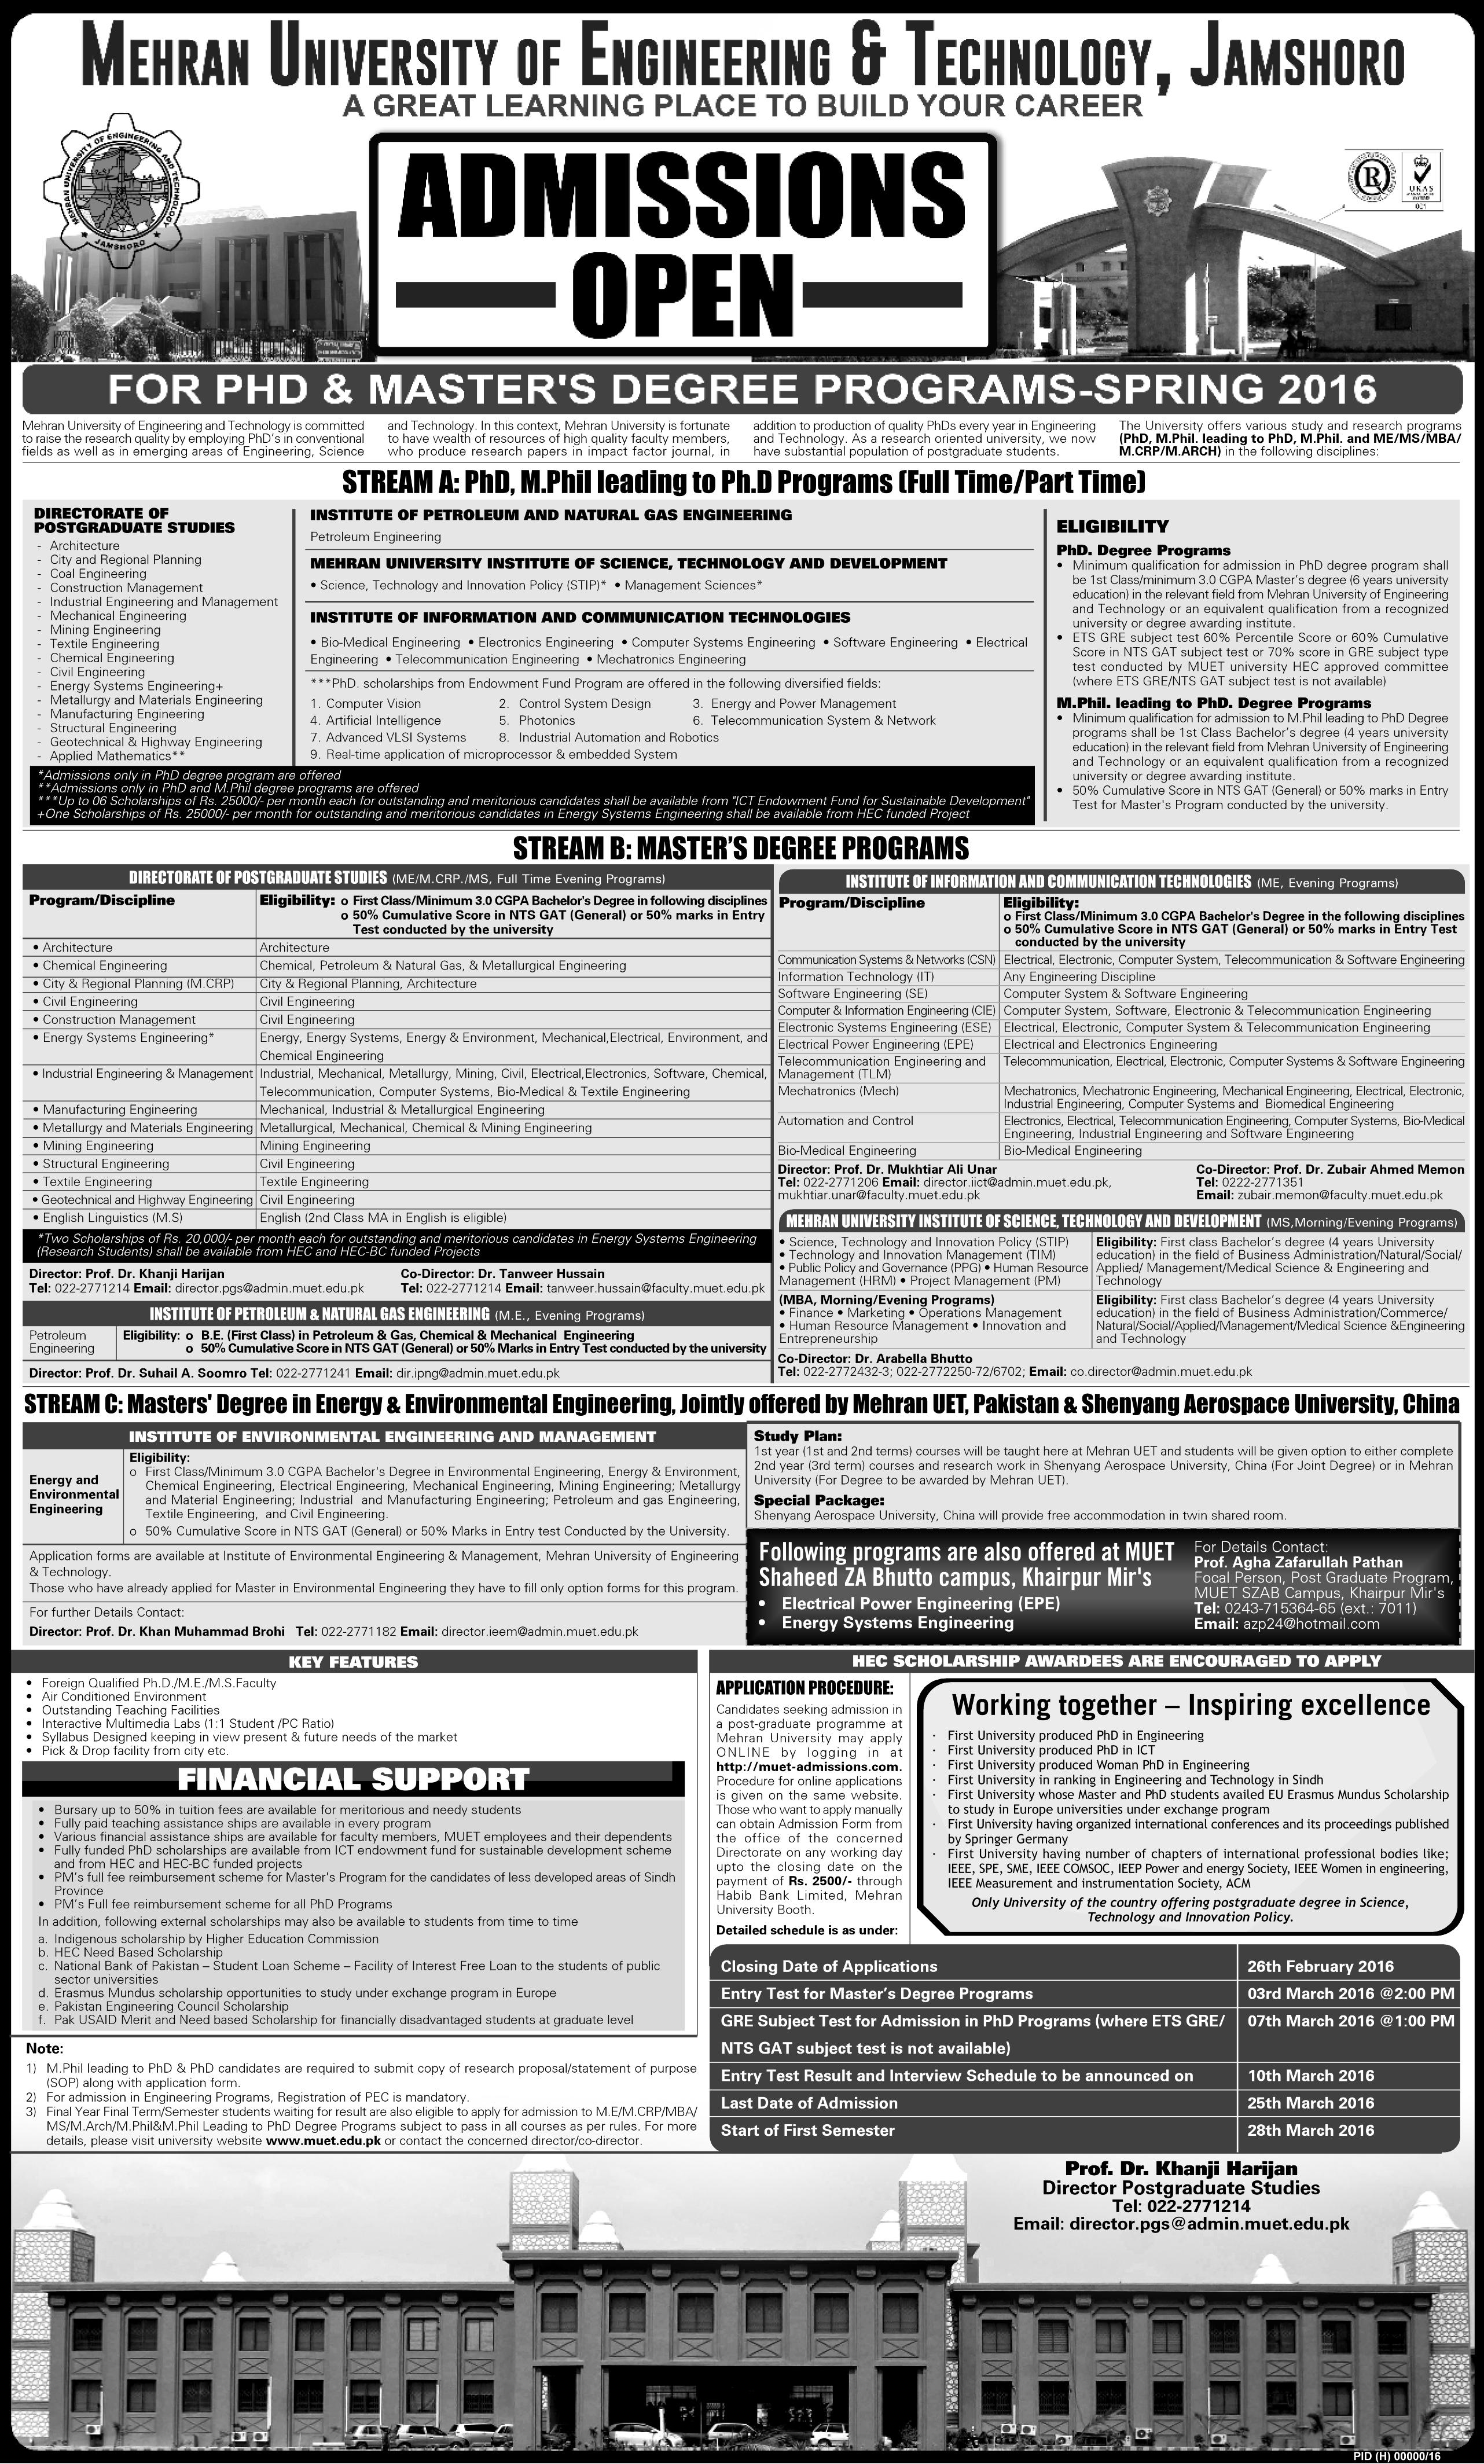 Admissions Open for PhD & Master's Degree Programs - Spring